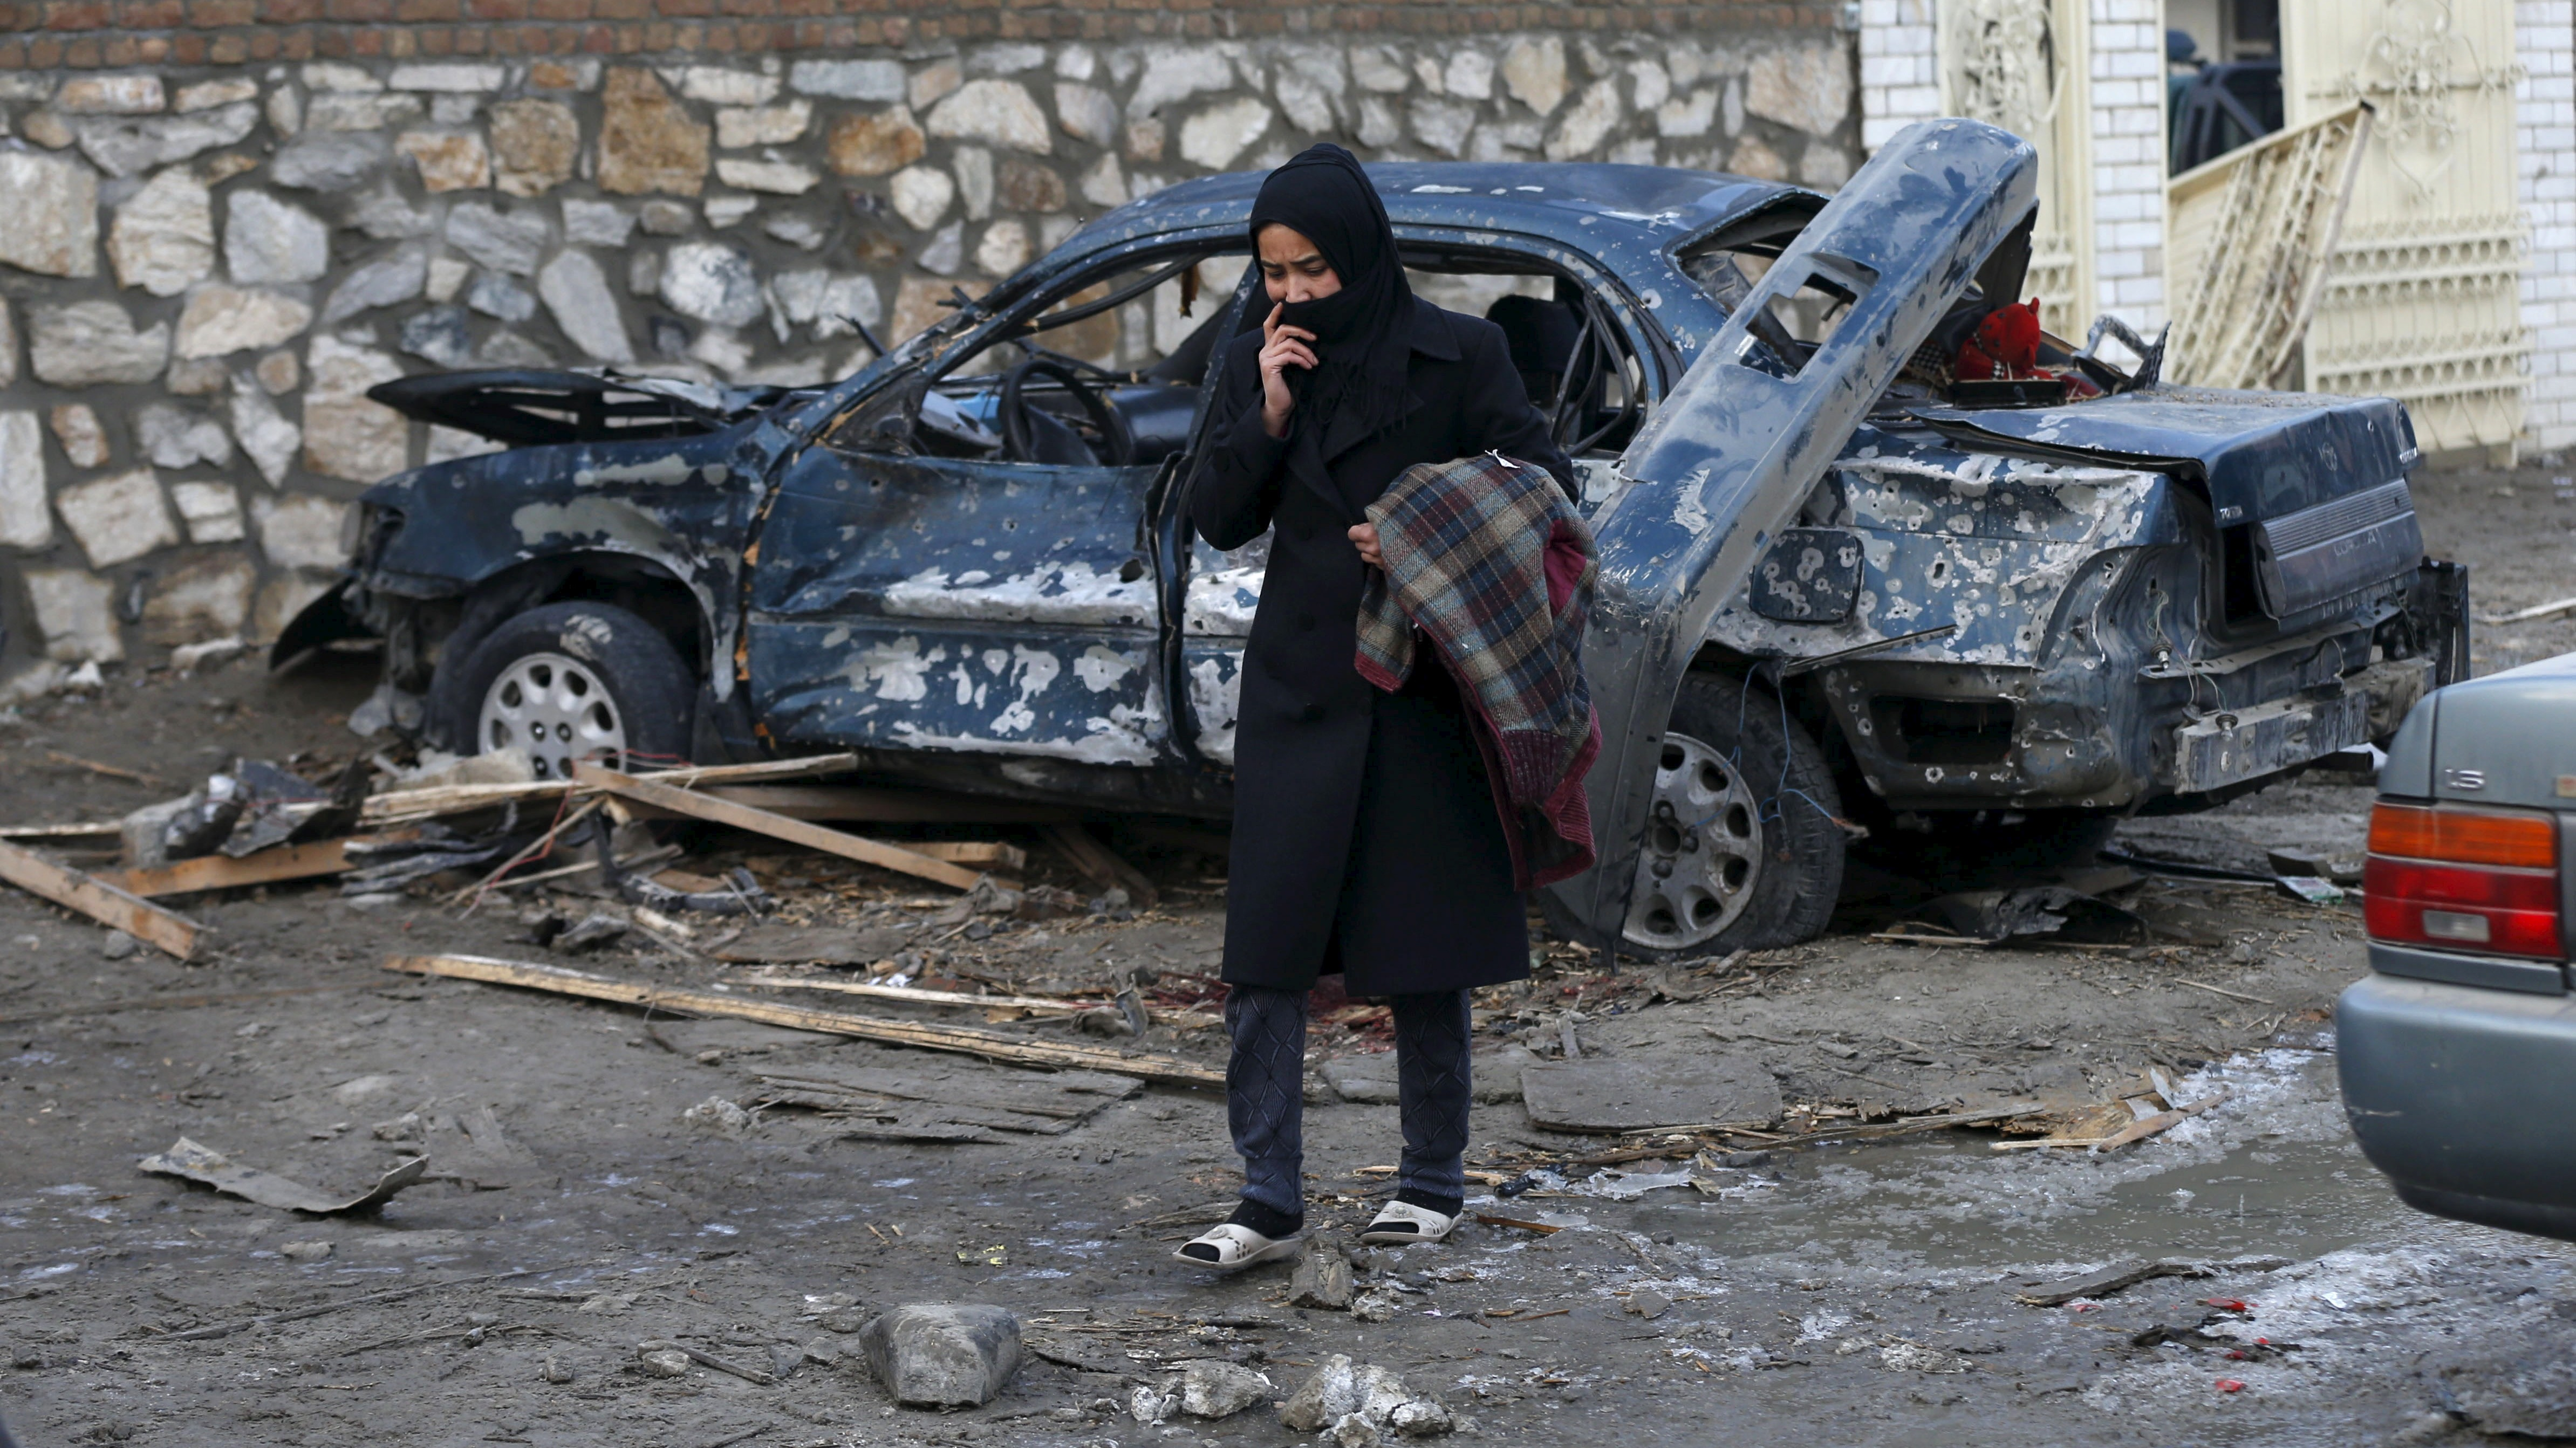 """An Afghan woman walks past a damaged car after a suicide attack on French restaurant  """"Le Jardin""""  in Kabul, Afghanistan January 2, 2016. The attack on Friday killed a 12-year-old boy and wounded more than a dozen other people, officials said."""